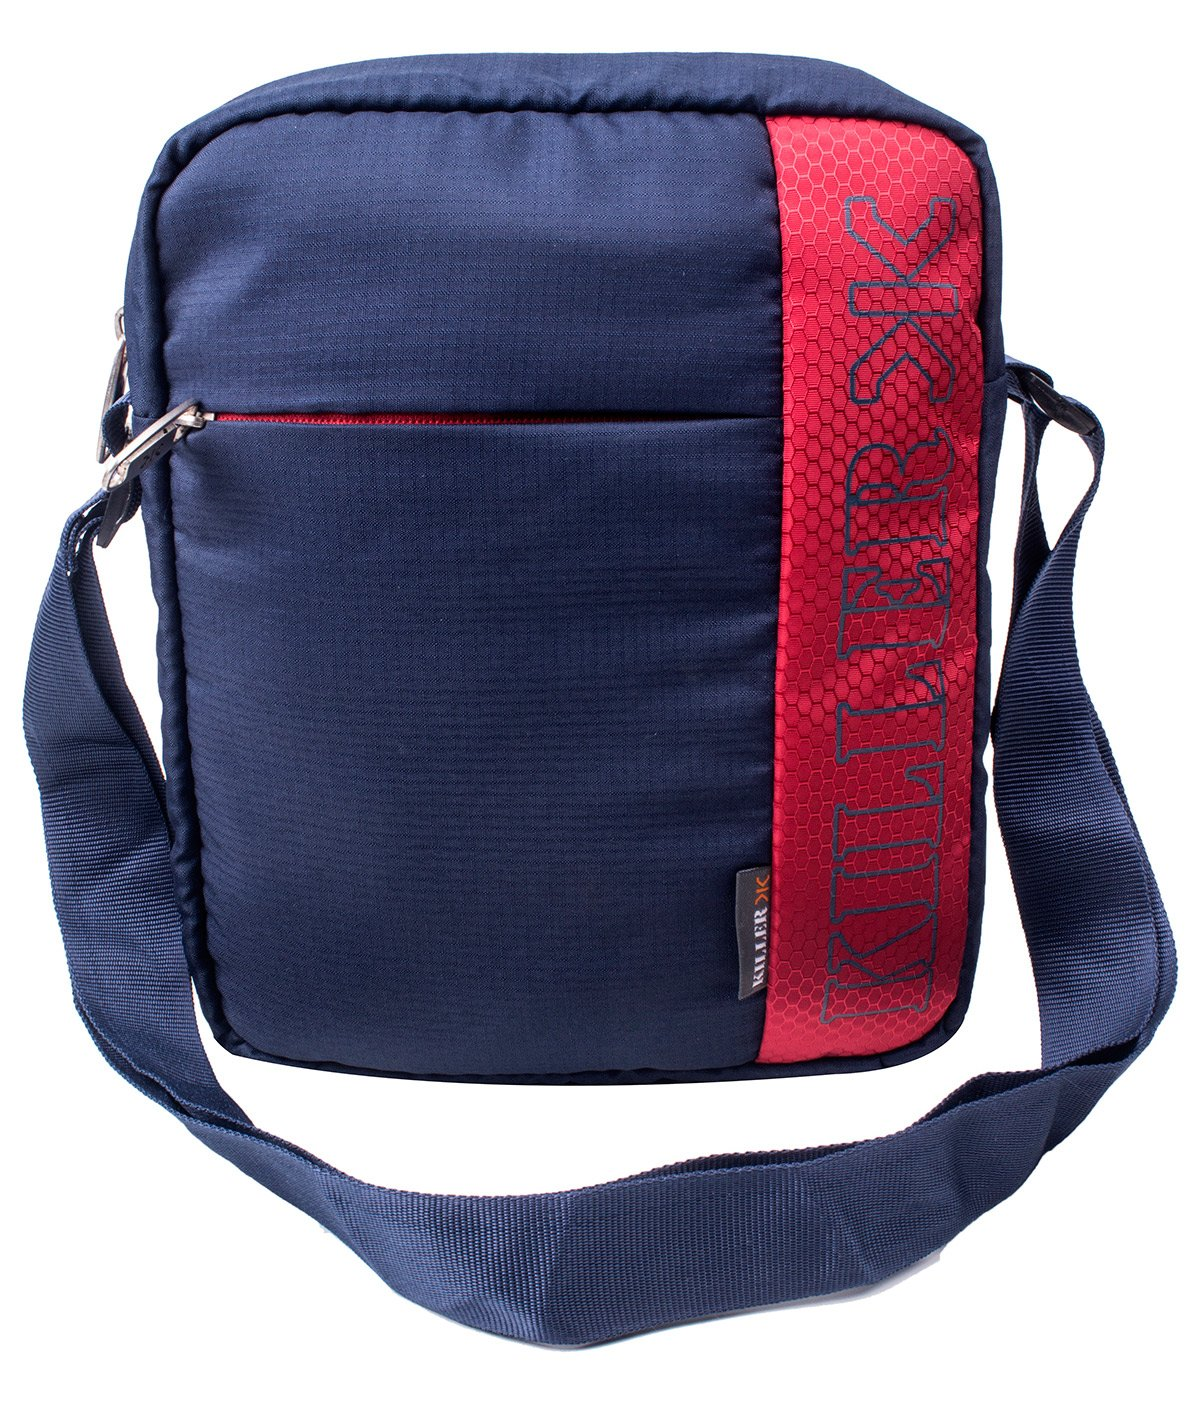 Amazon: Killer ENTIZO Traveler Sling Bag @ Rs.399/- (56% OFF)